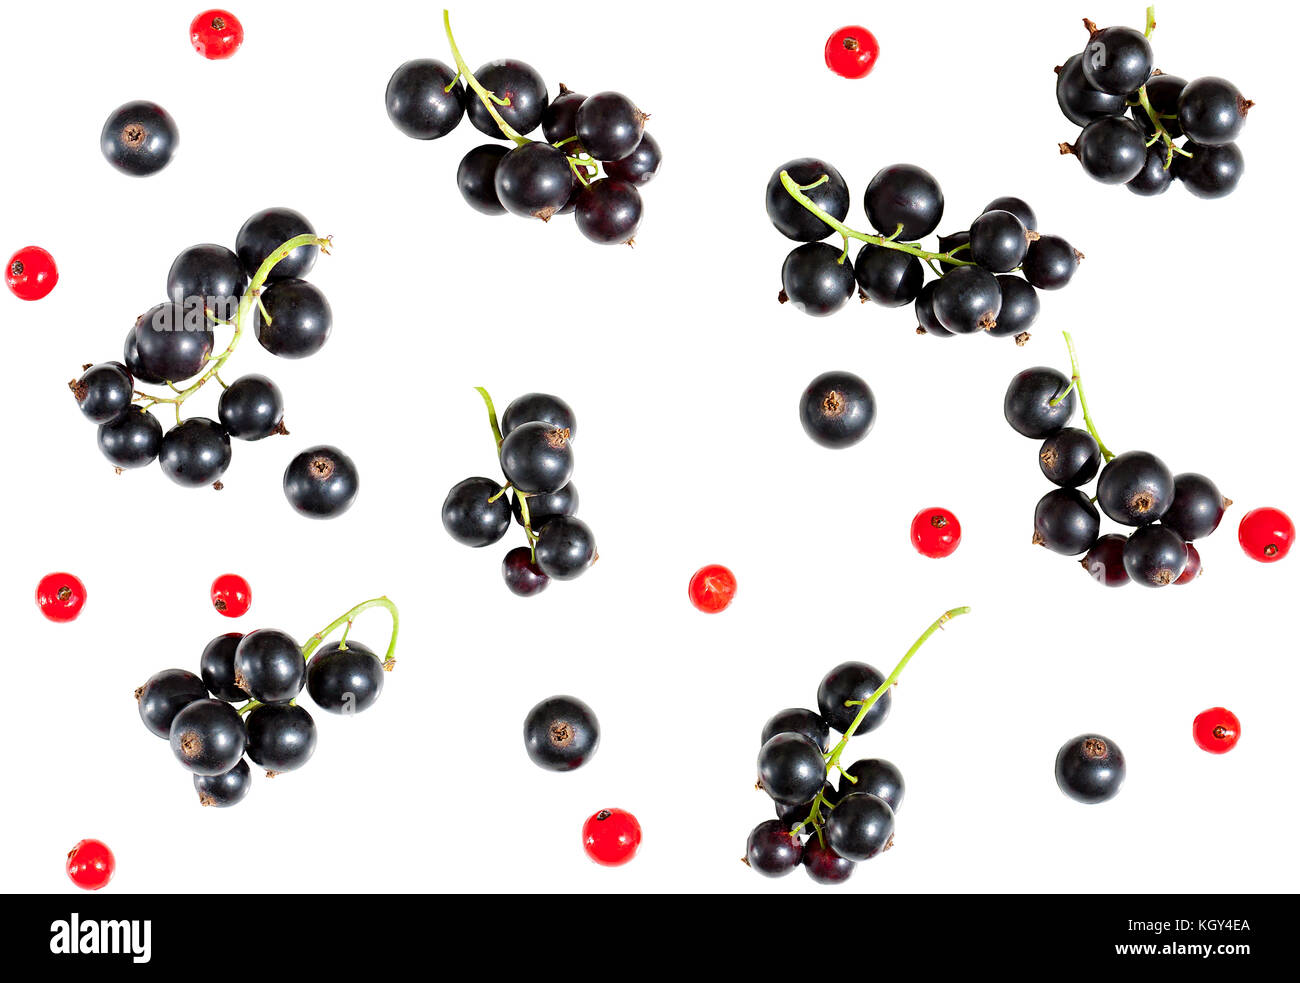 berries of black currant and red currant isolated on white background. flat lay, top view. seamless background Stock Photo